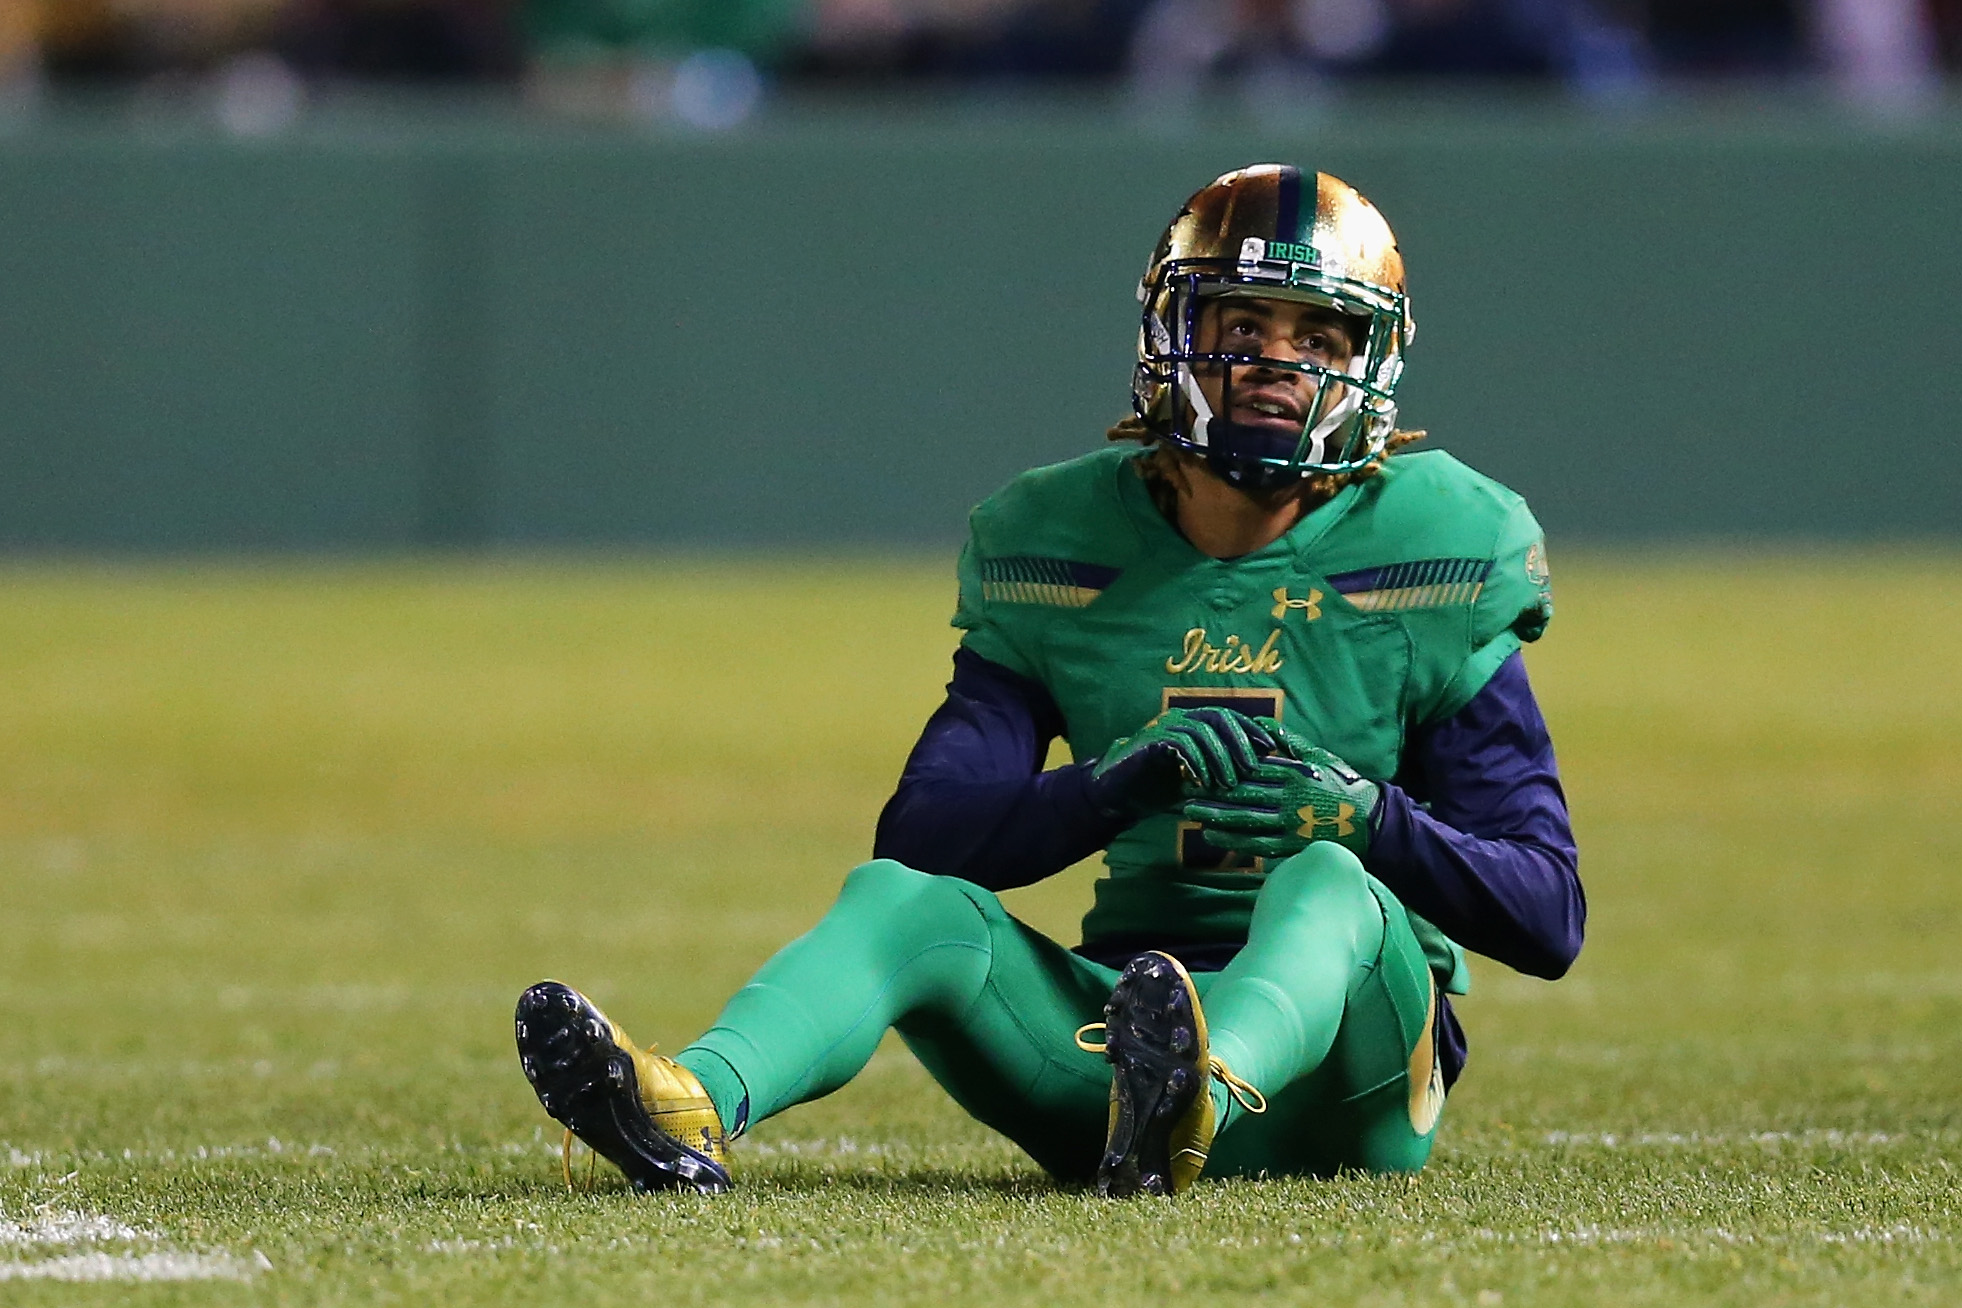 Will Fuller drops to the turf following another dropped pass for the Fighting Irish